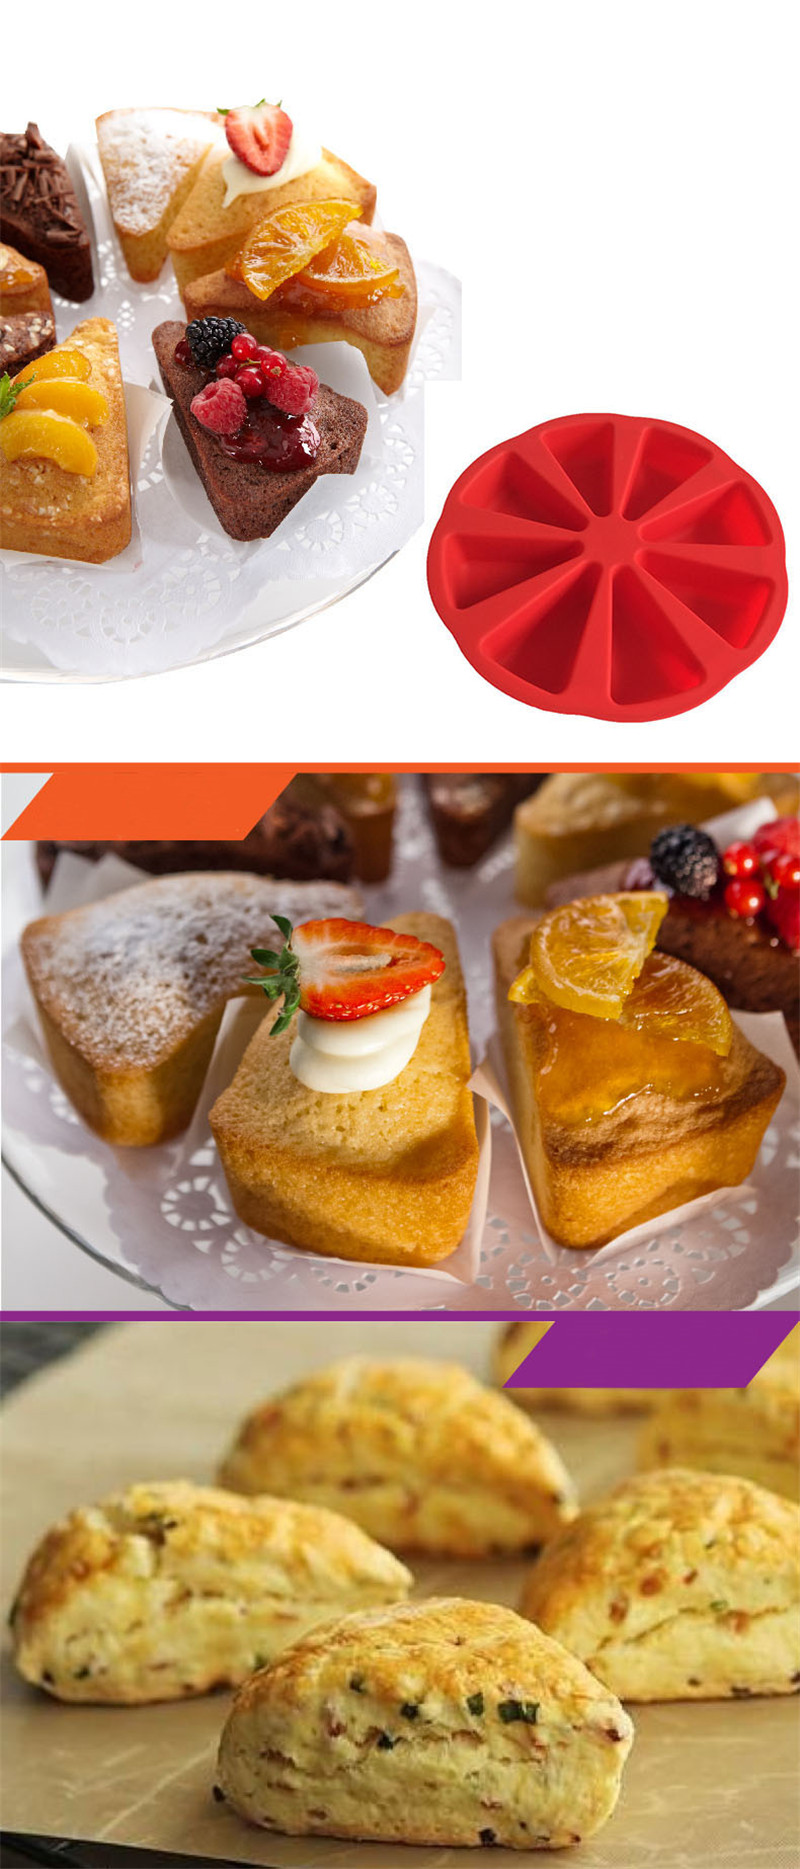 Bakeware Molds Cake Pan Silicone Cake Mold Pudding Triangle Cakes Mould Muffin Baking Tools Fondant  Cake Molds5